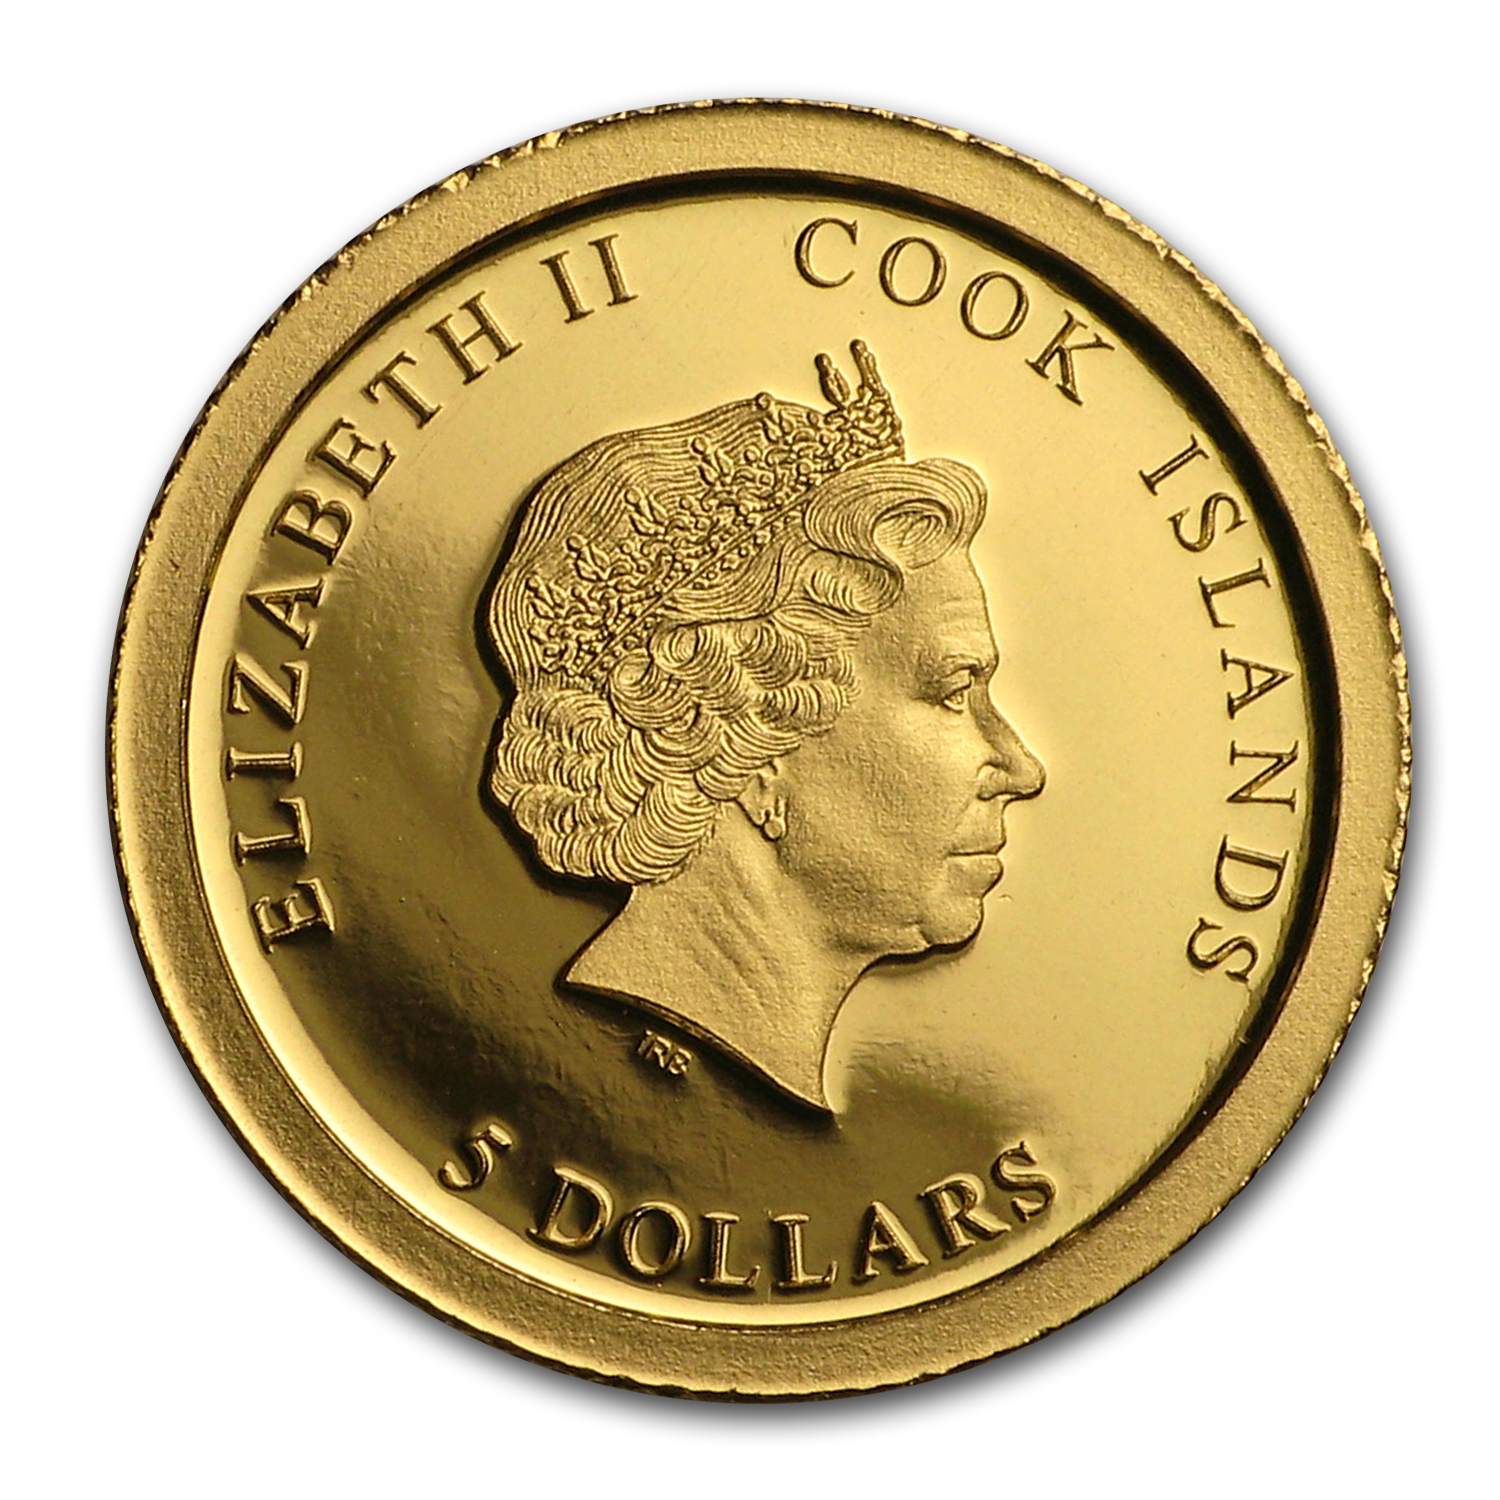 2017 Cook Islands 1/2 gram Gold 100 Anniv of Graf Zeppelin Proof